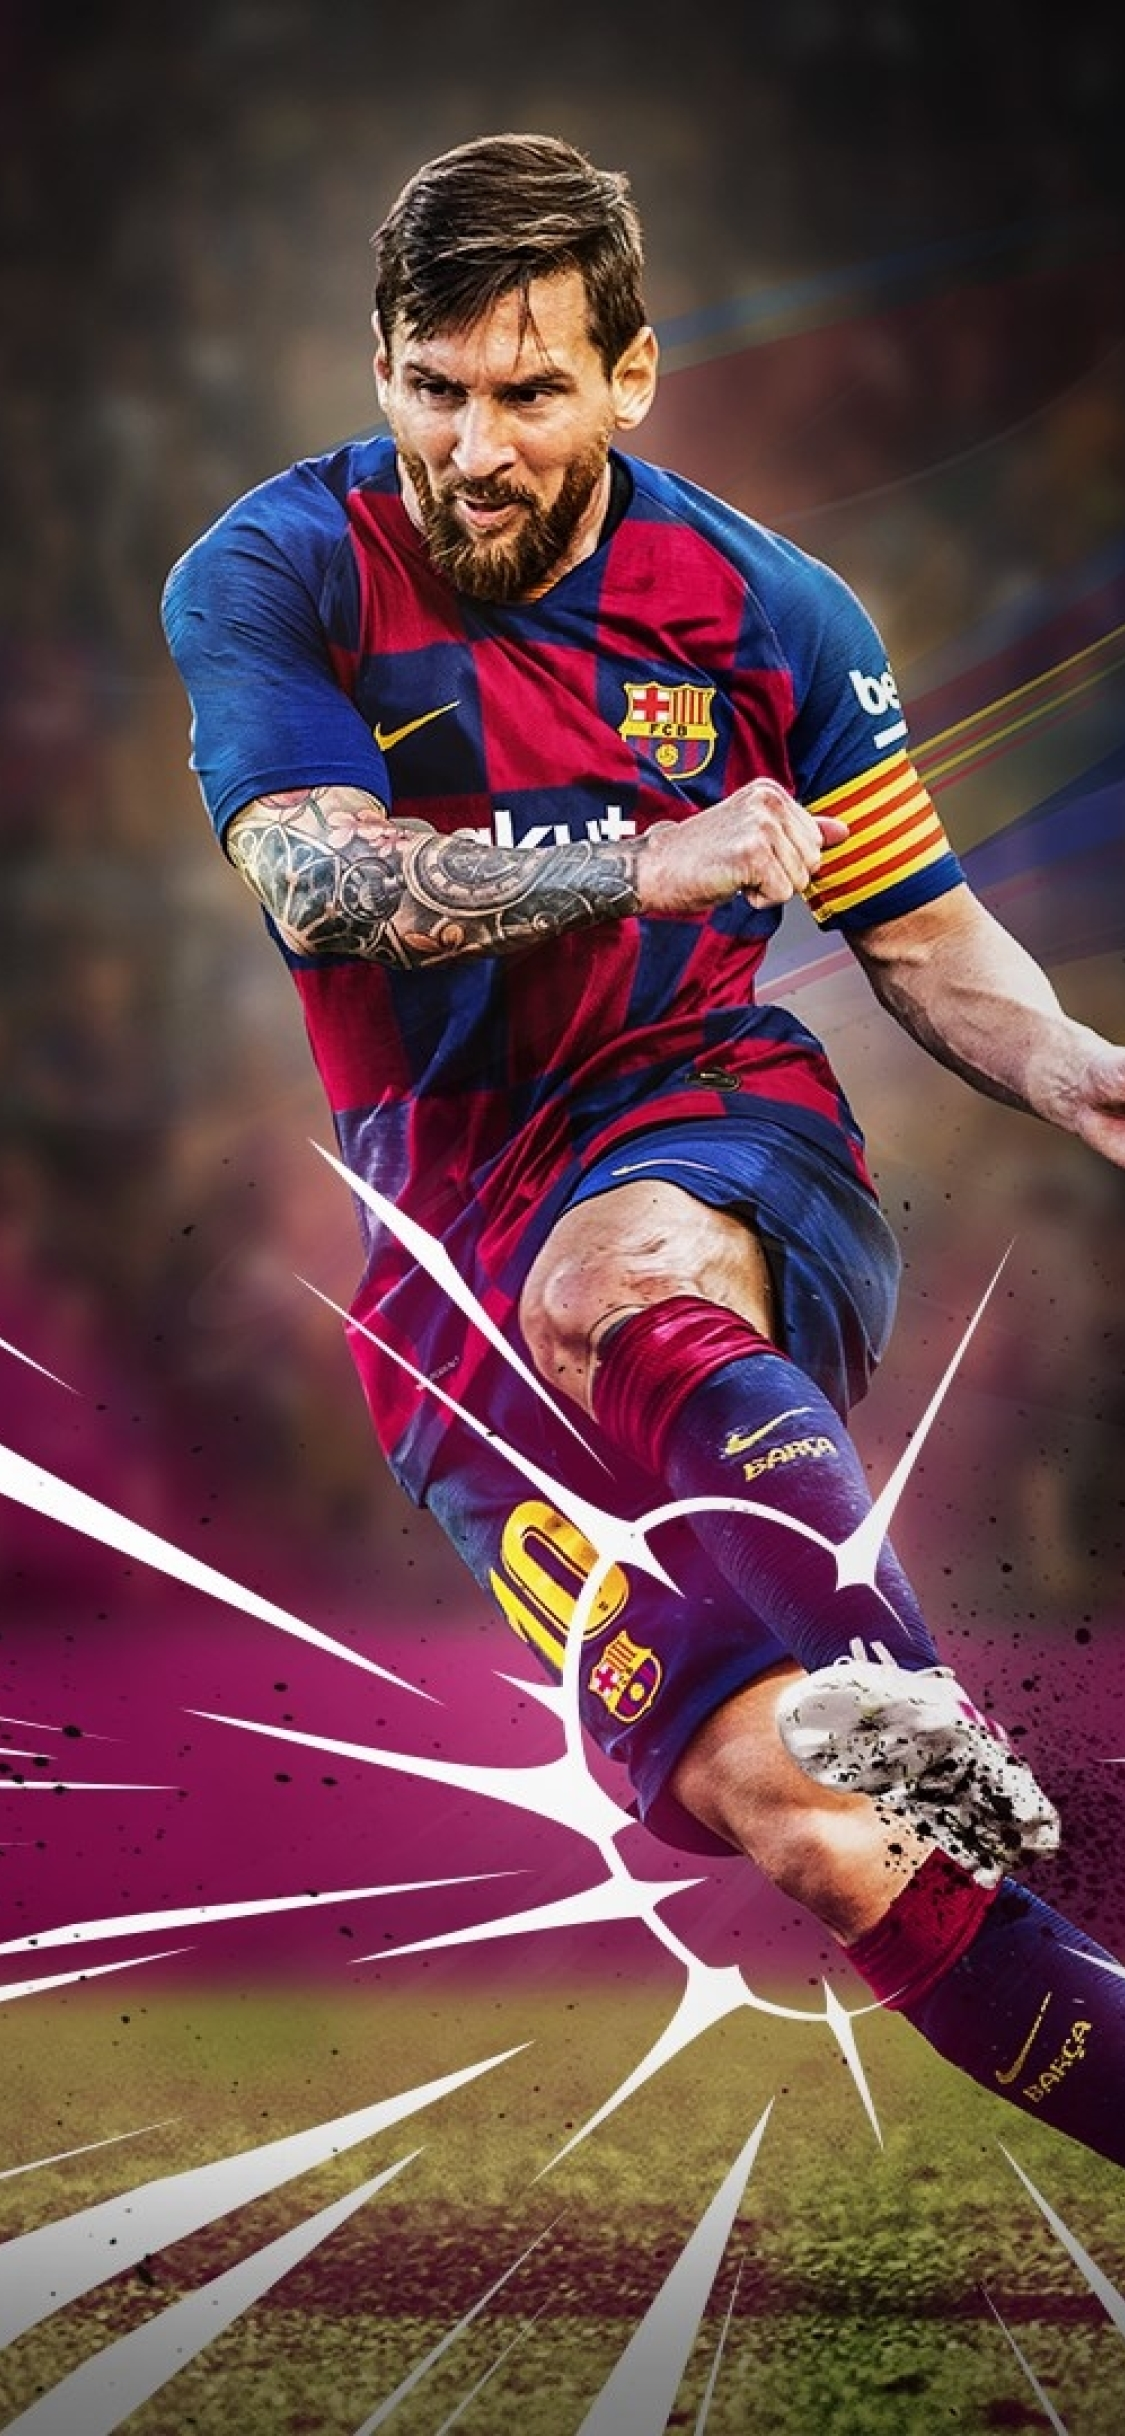 Wallpaper Messi 2020